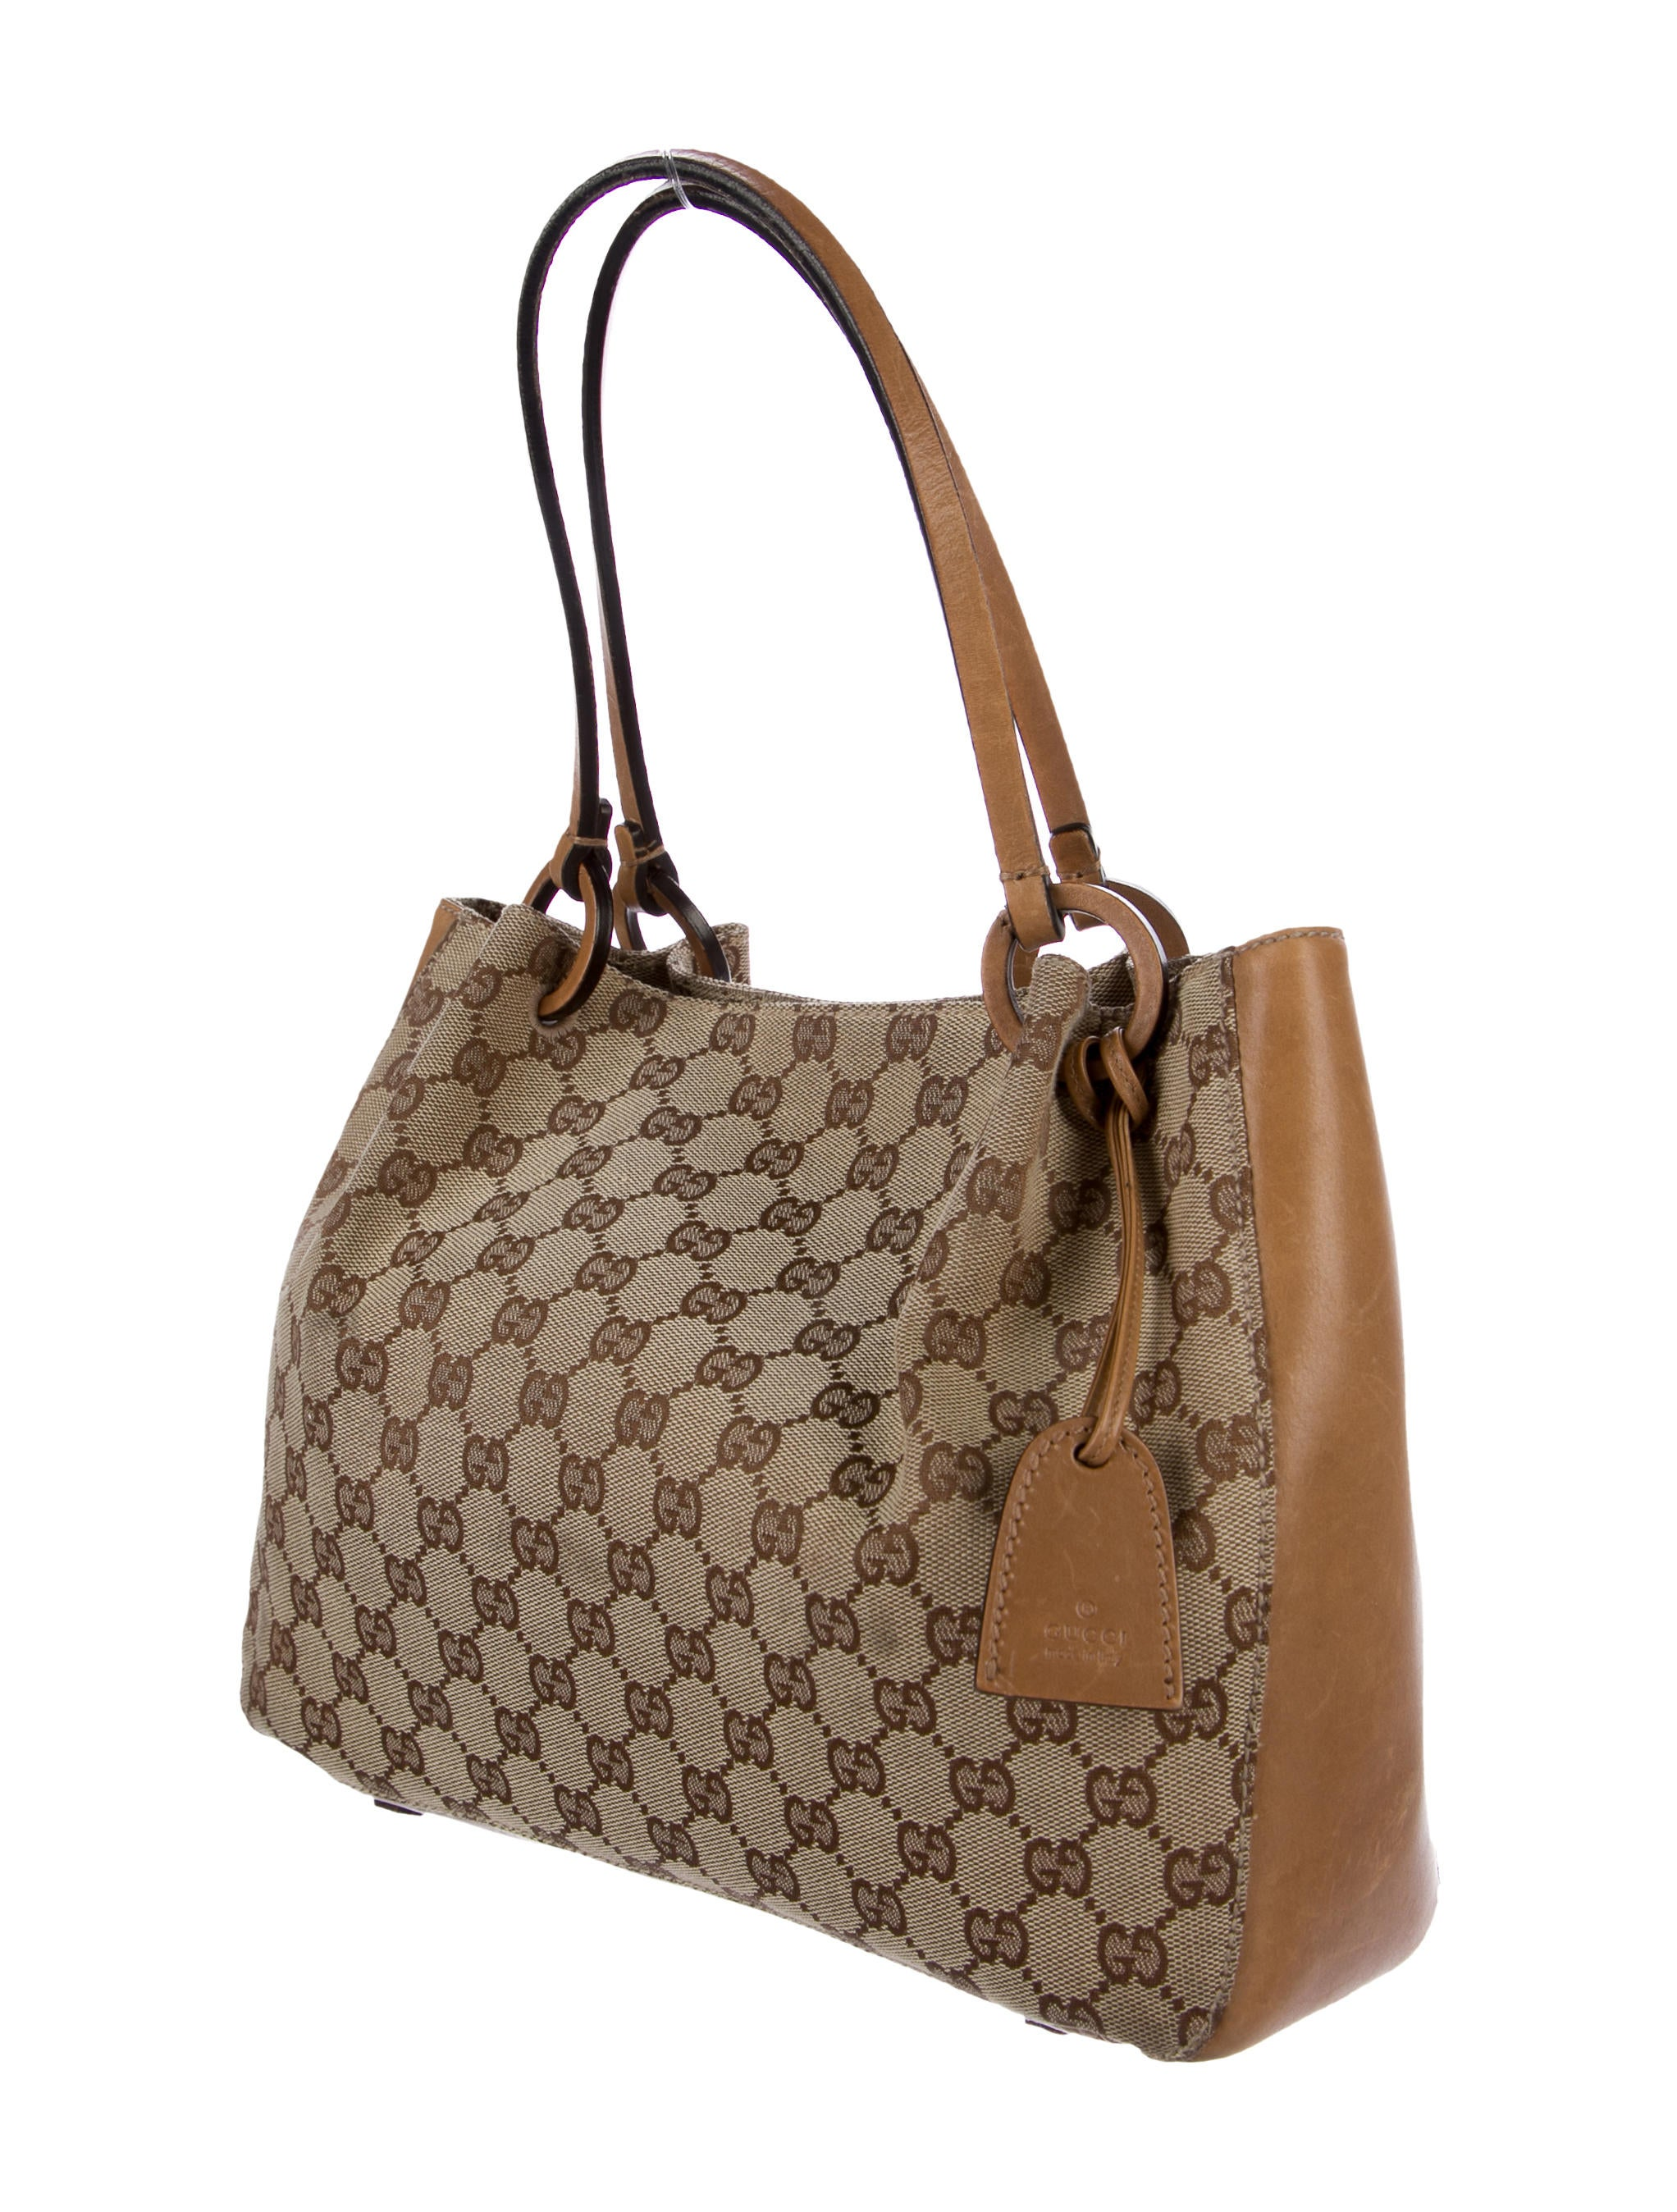 45feb866d76f41 Gucci Gg Canvas Handbags | Stanford Center for Opportunity Policy in ...